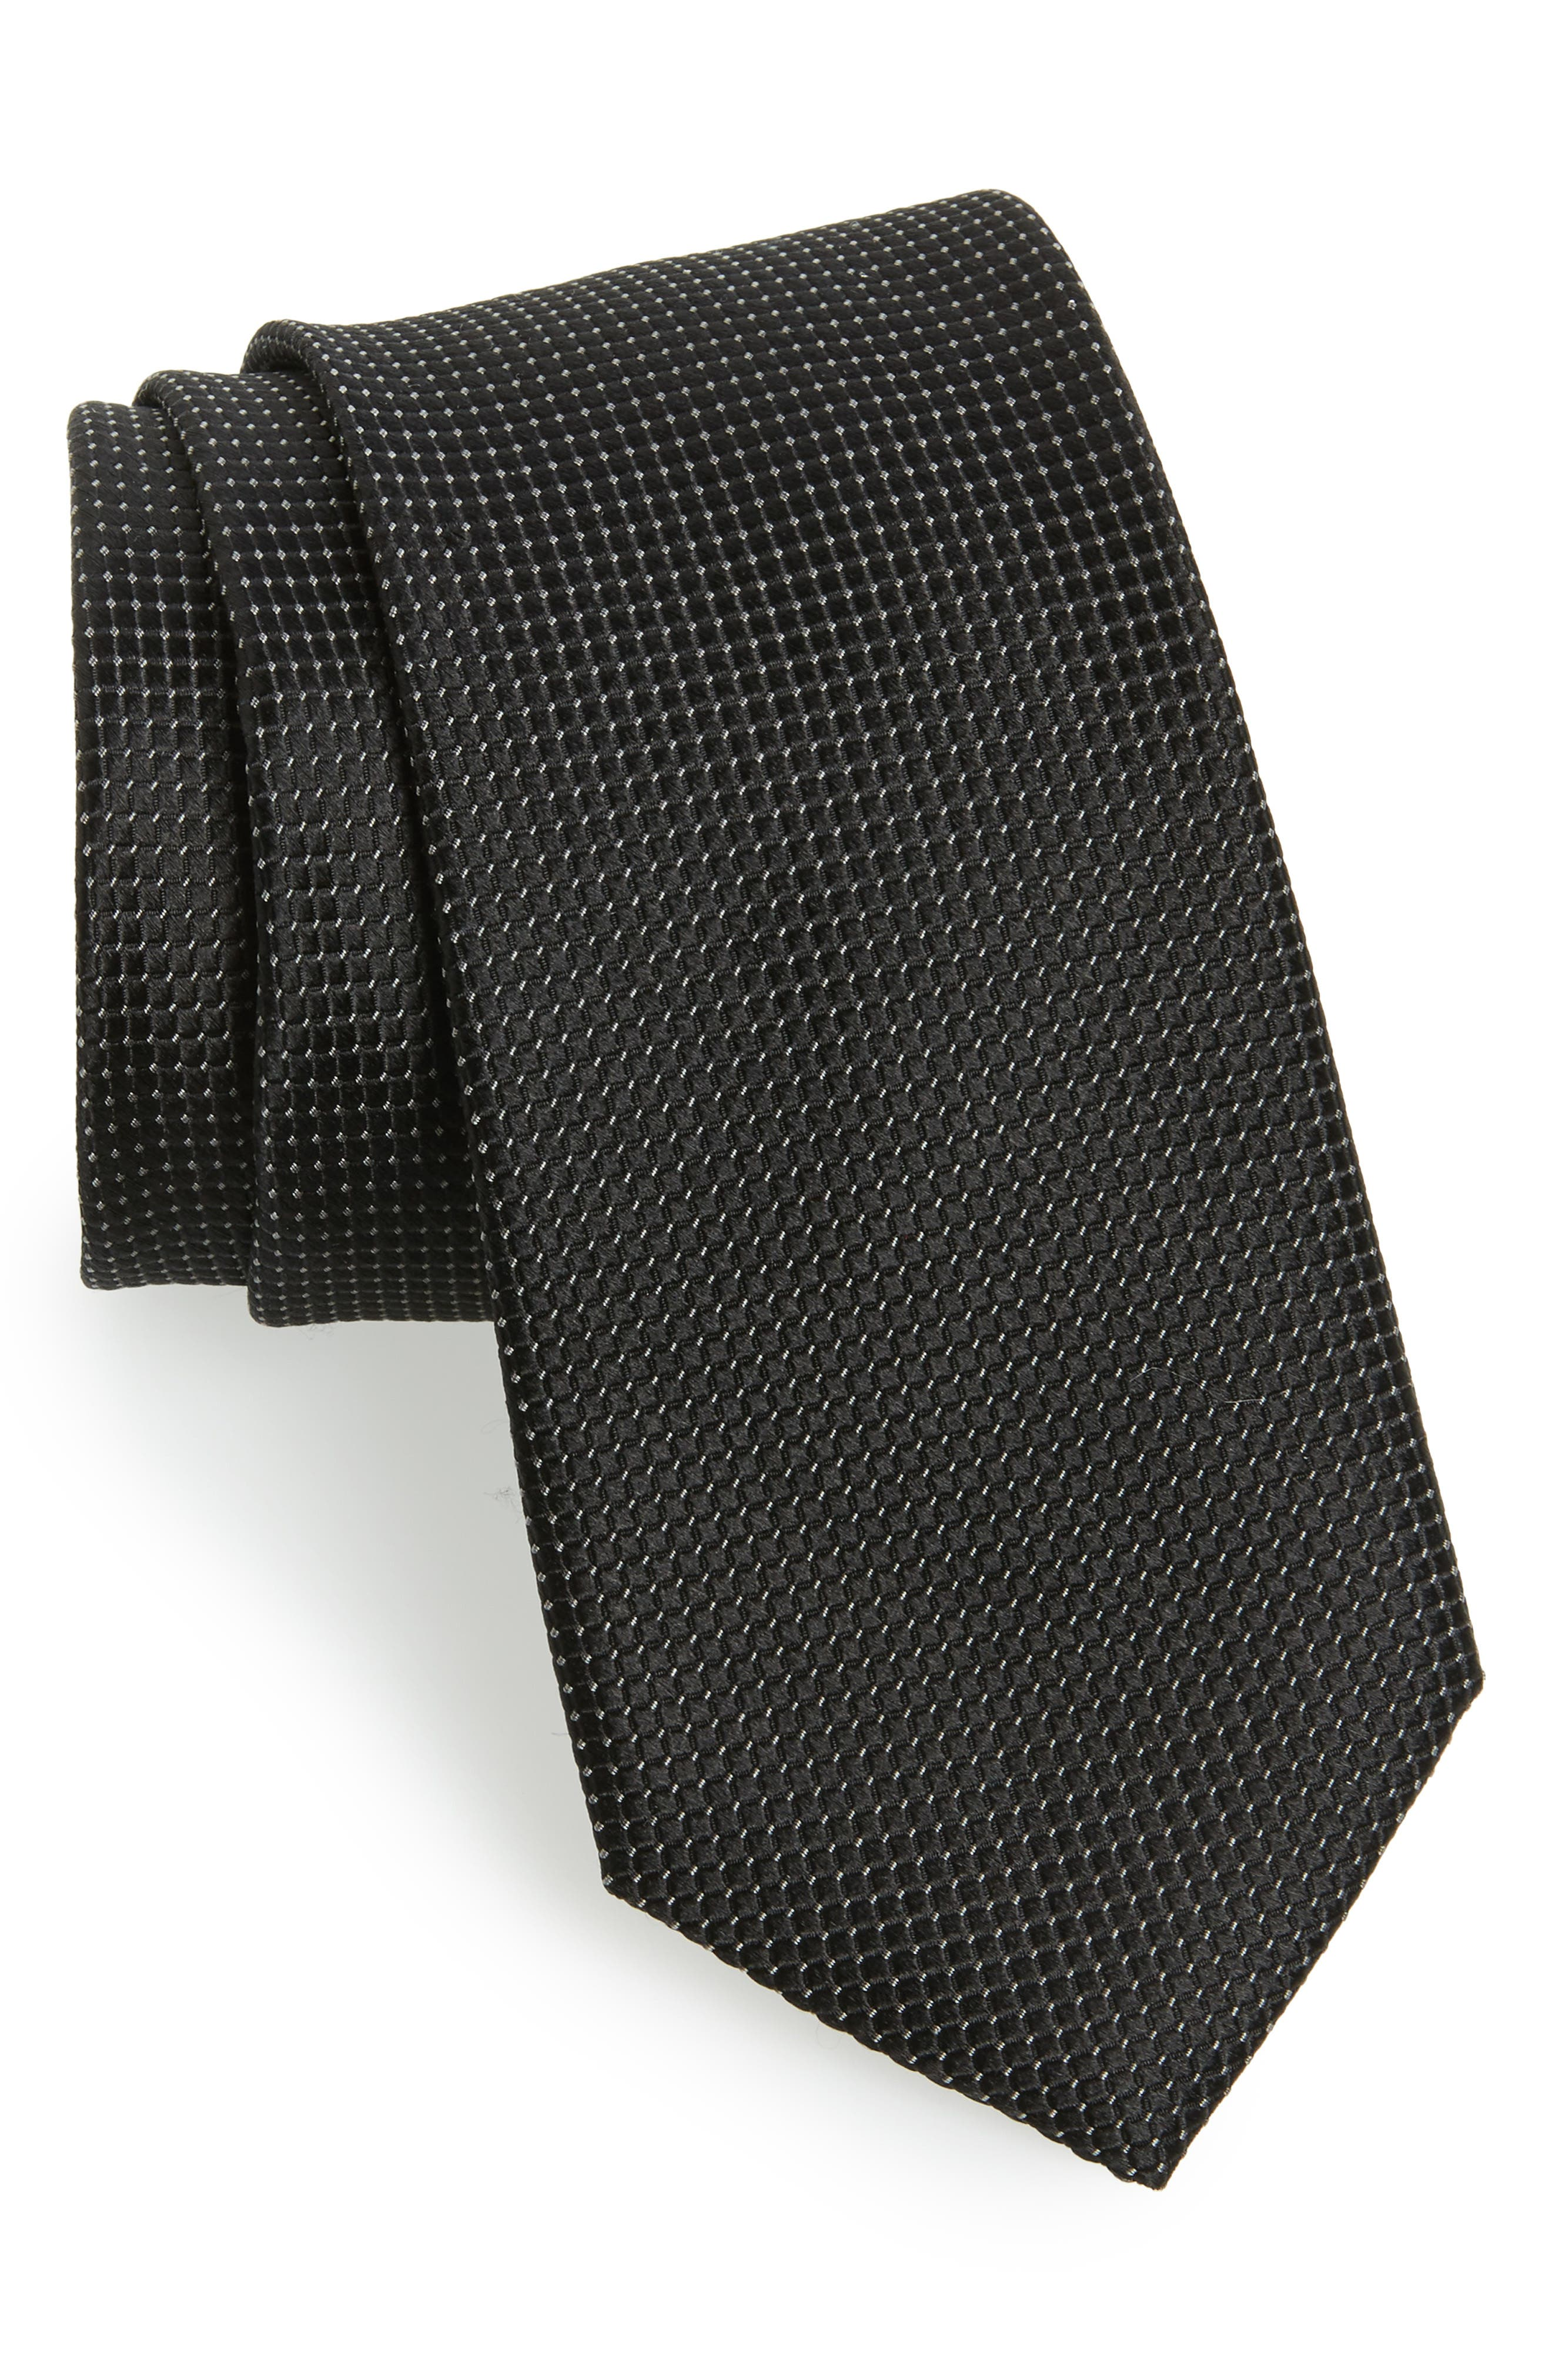 TED BAKER LONDON Solid Silk Tie, Main, color, BLACK